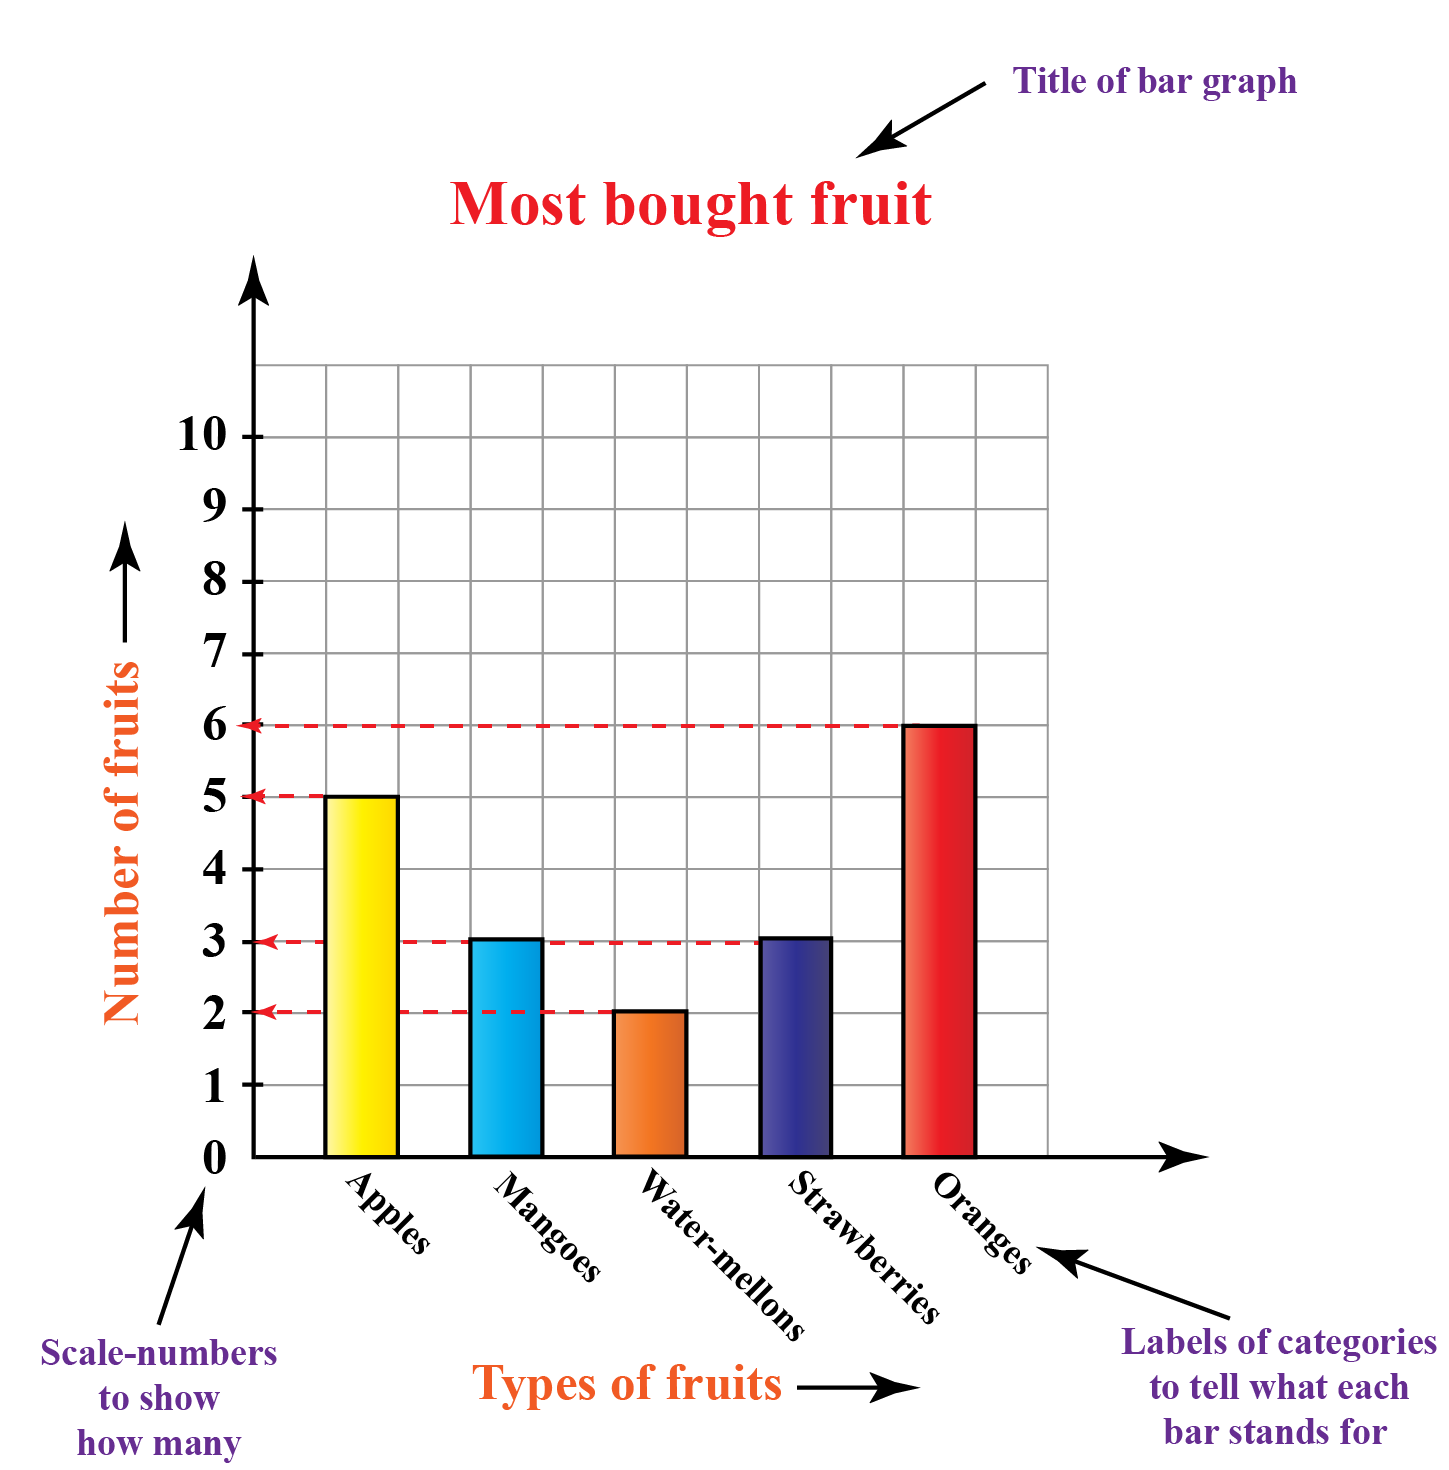 Representation of example of fruits in terms of bar graph